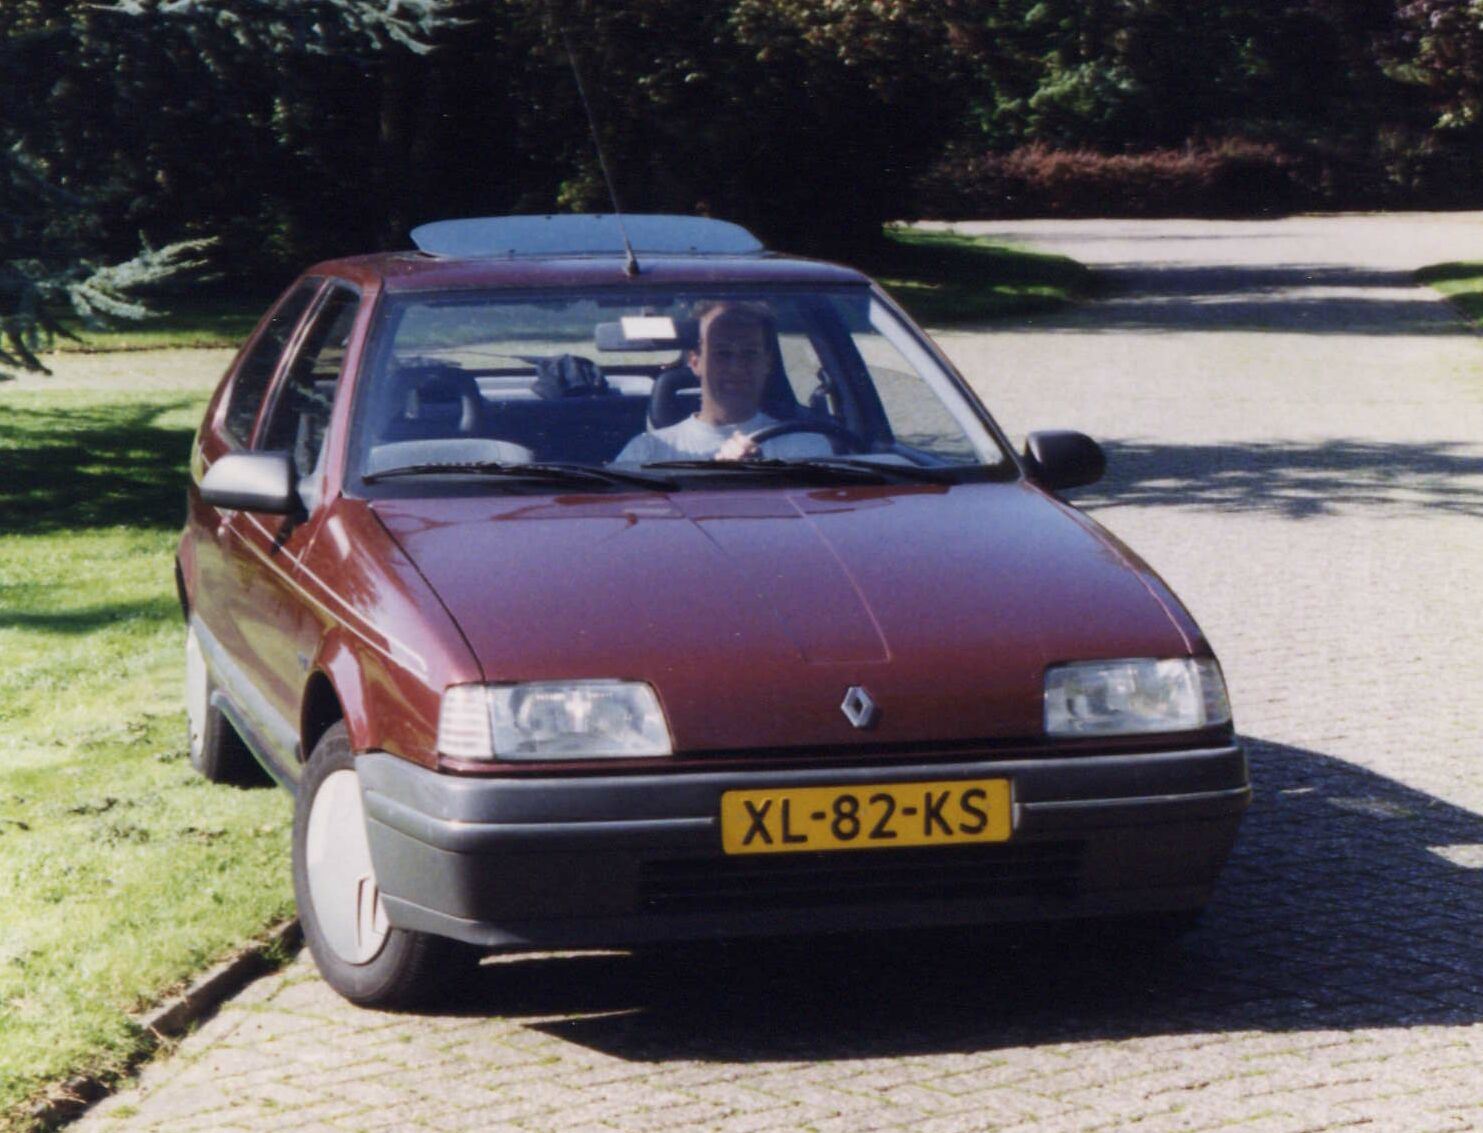 2019 Renault Fuego Turbo photo - 1